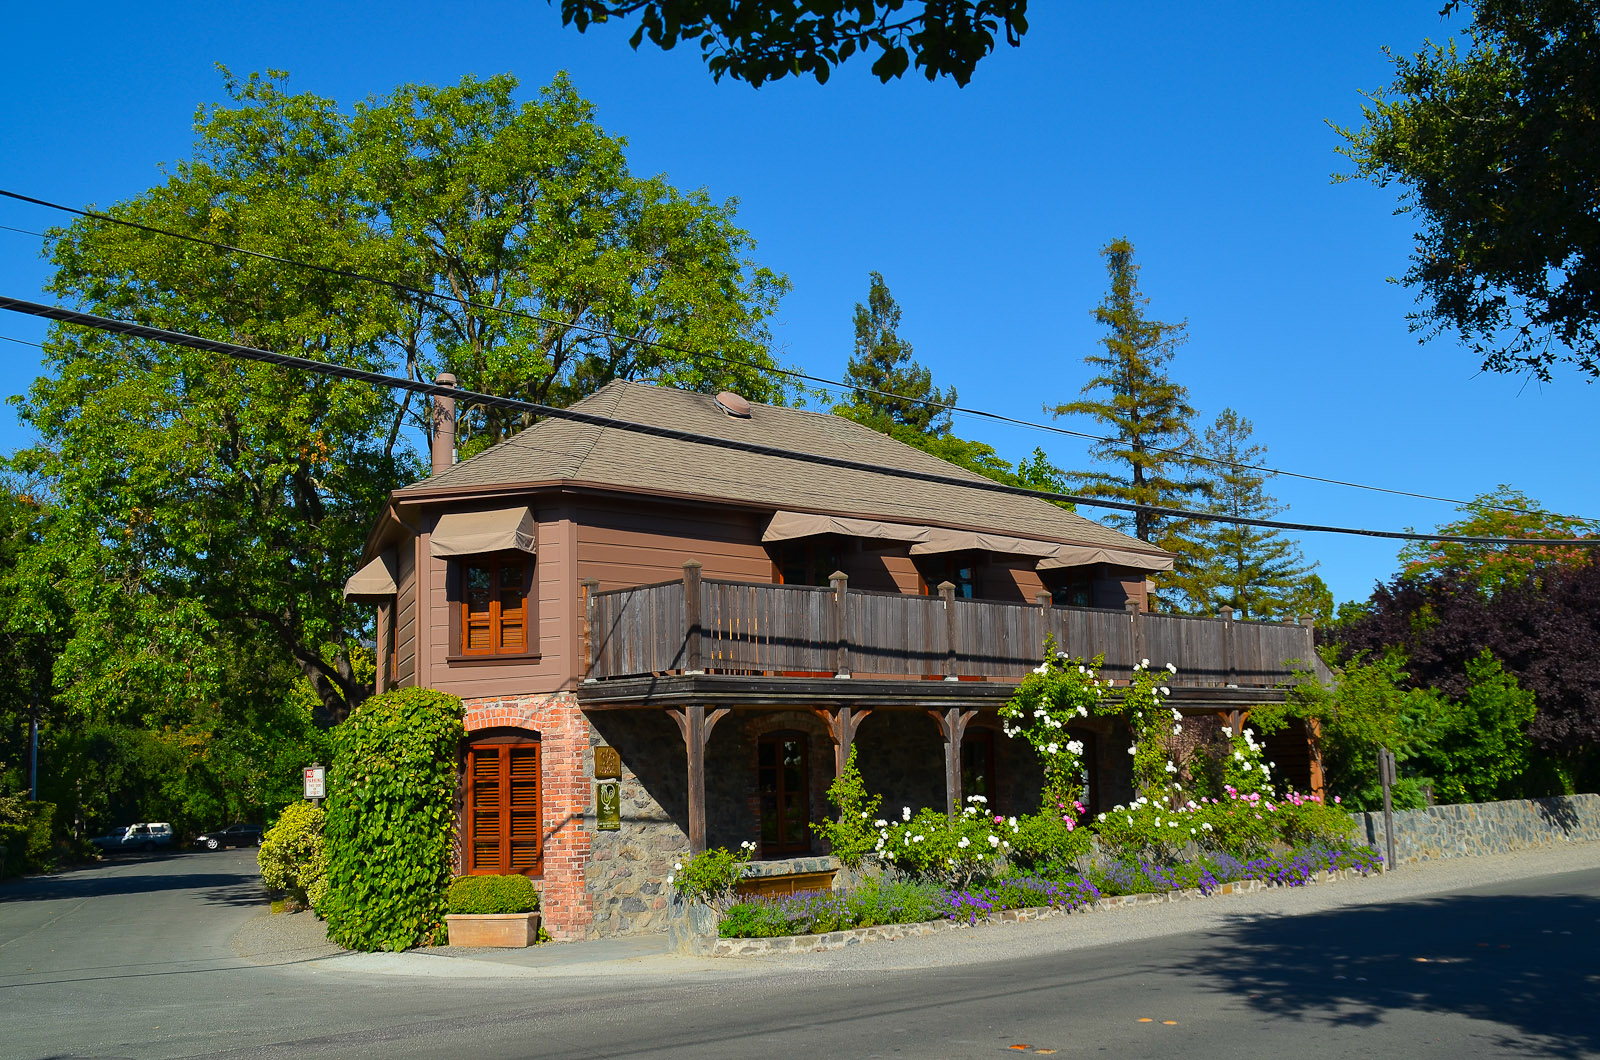 The-Frenc-Laundry-Yountville-CA-The-French-Laundry.jpg